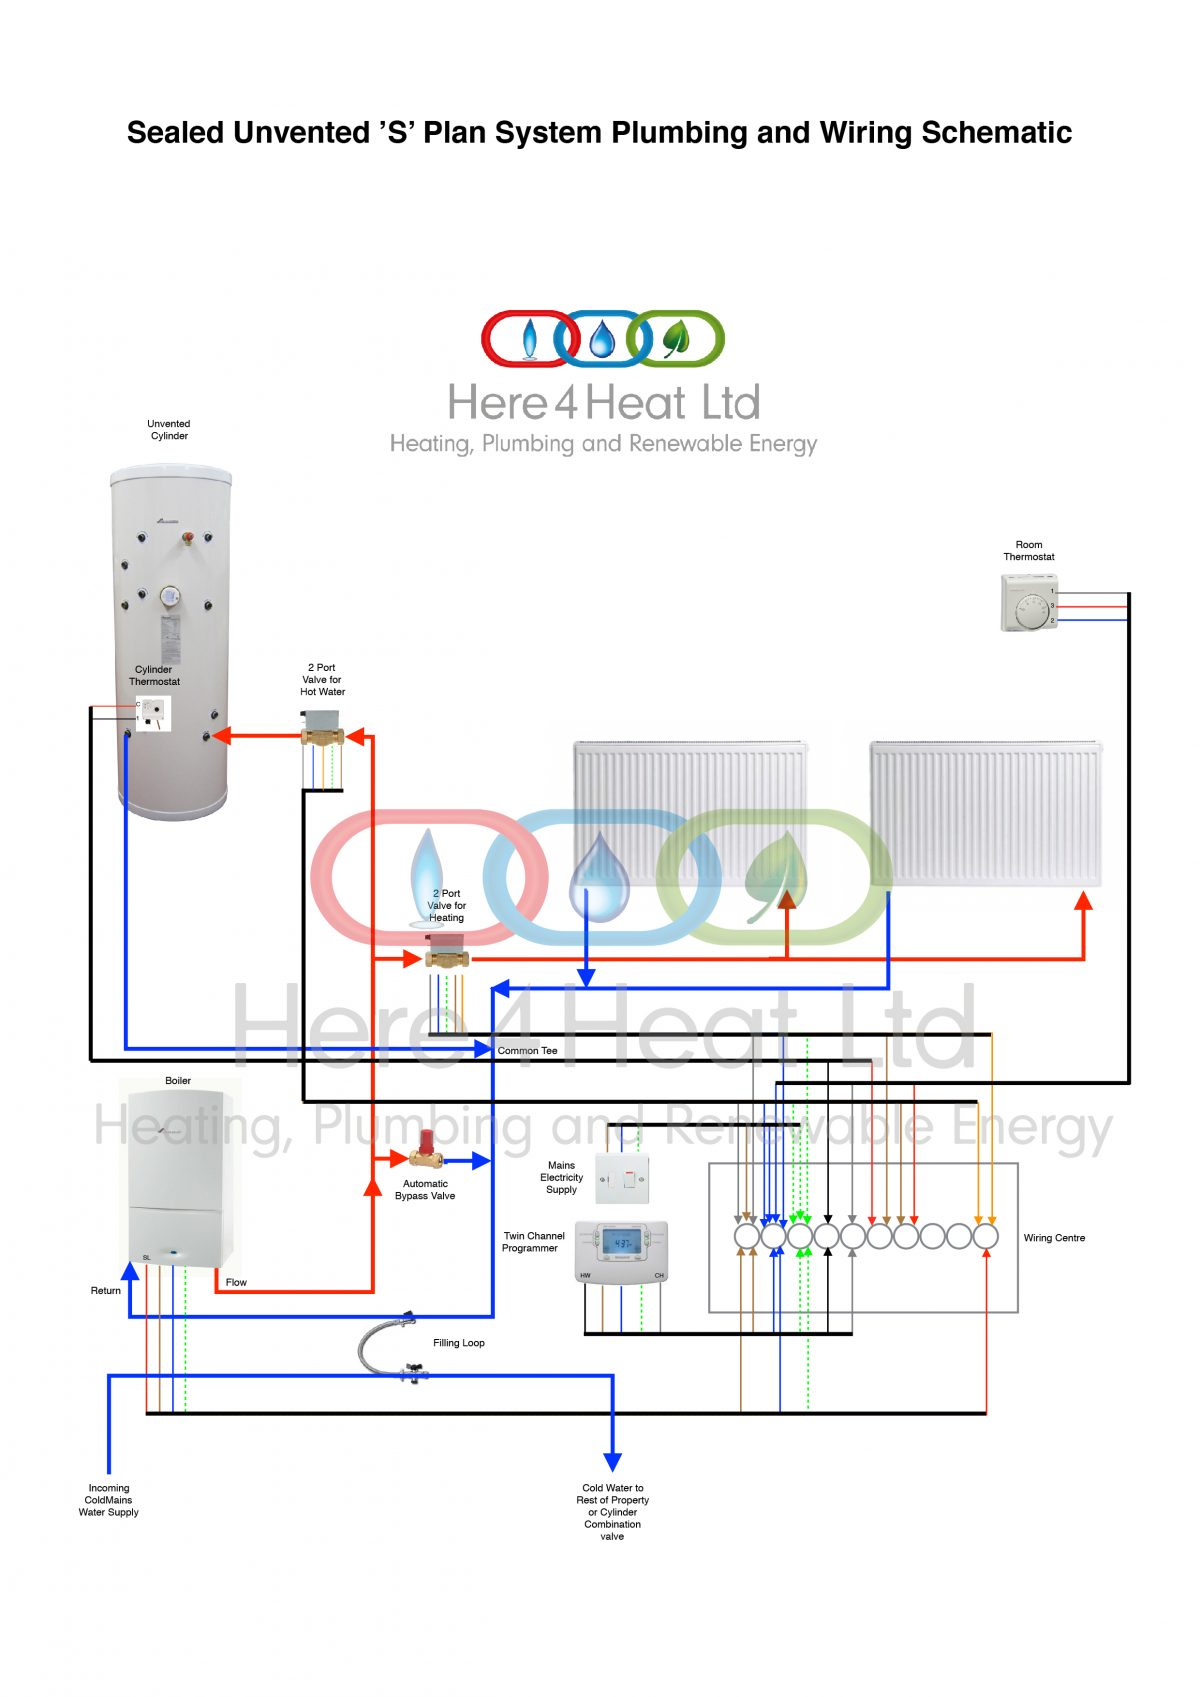 https://here4heat.com/wp-content/uploads/2018/06/Here-4-Heat-Sealed-Unvented-S-Plan-Plumbing-and-Wiring-Schematic-Diagram-01-1200x1697.jpg